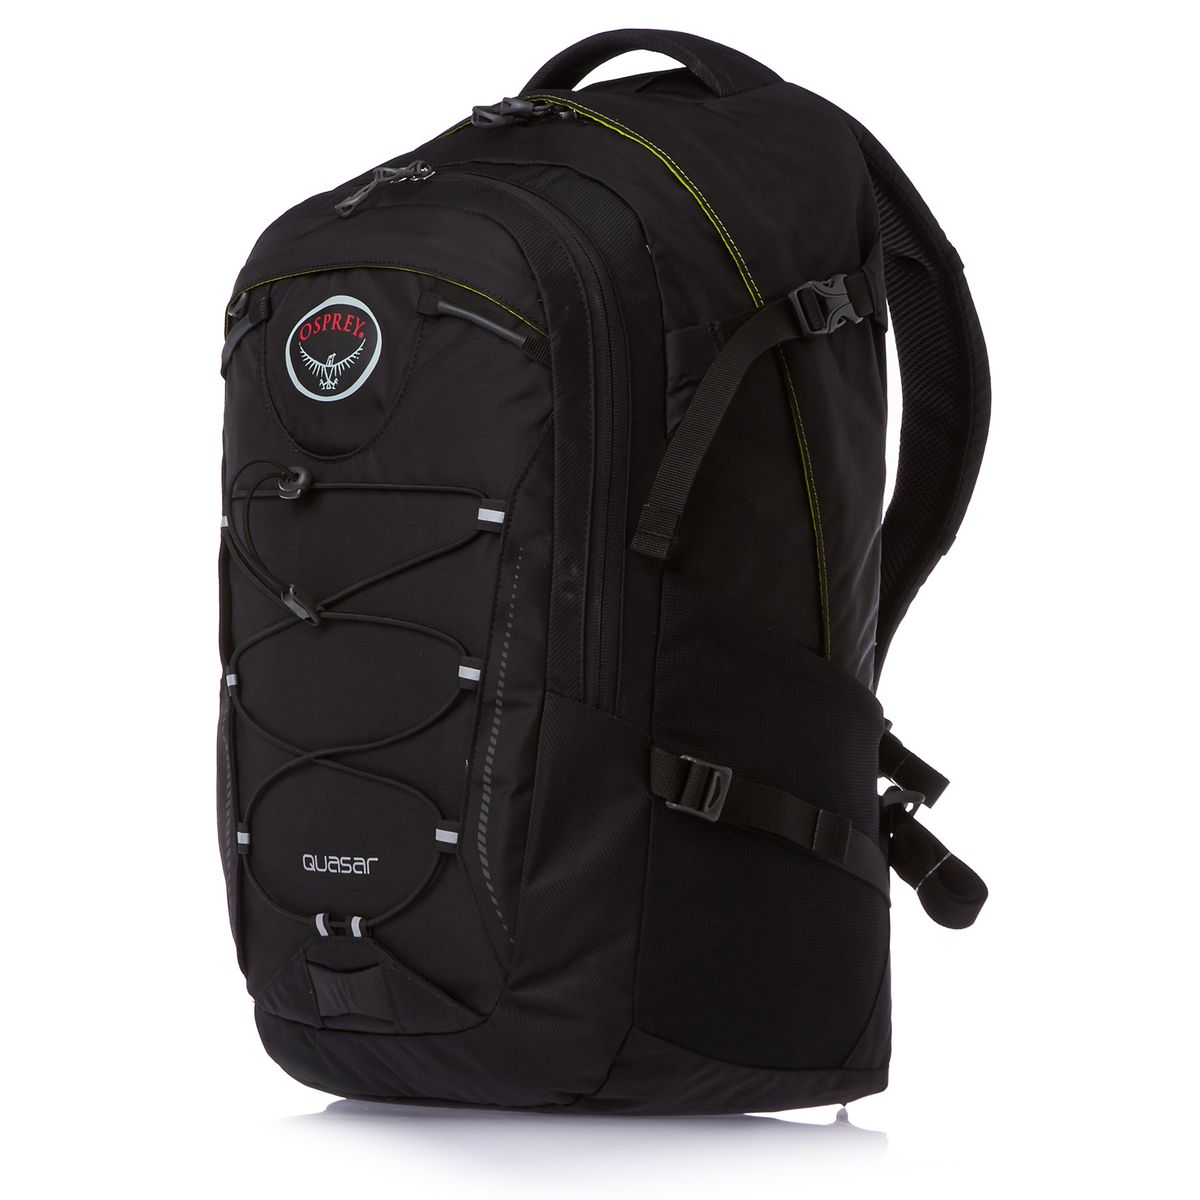 osprey-backpacks-osprey-quasar-28-backpack-black